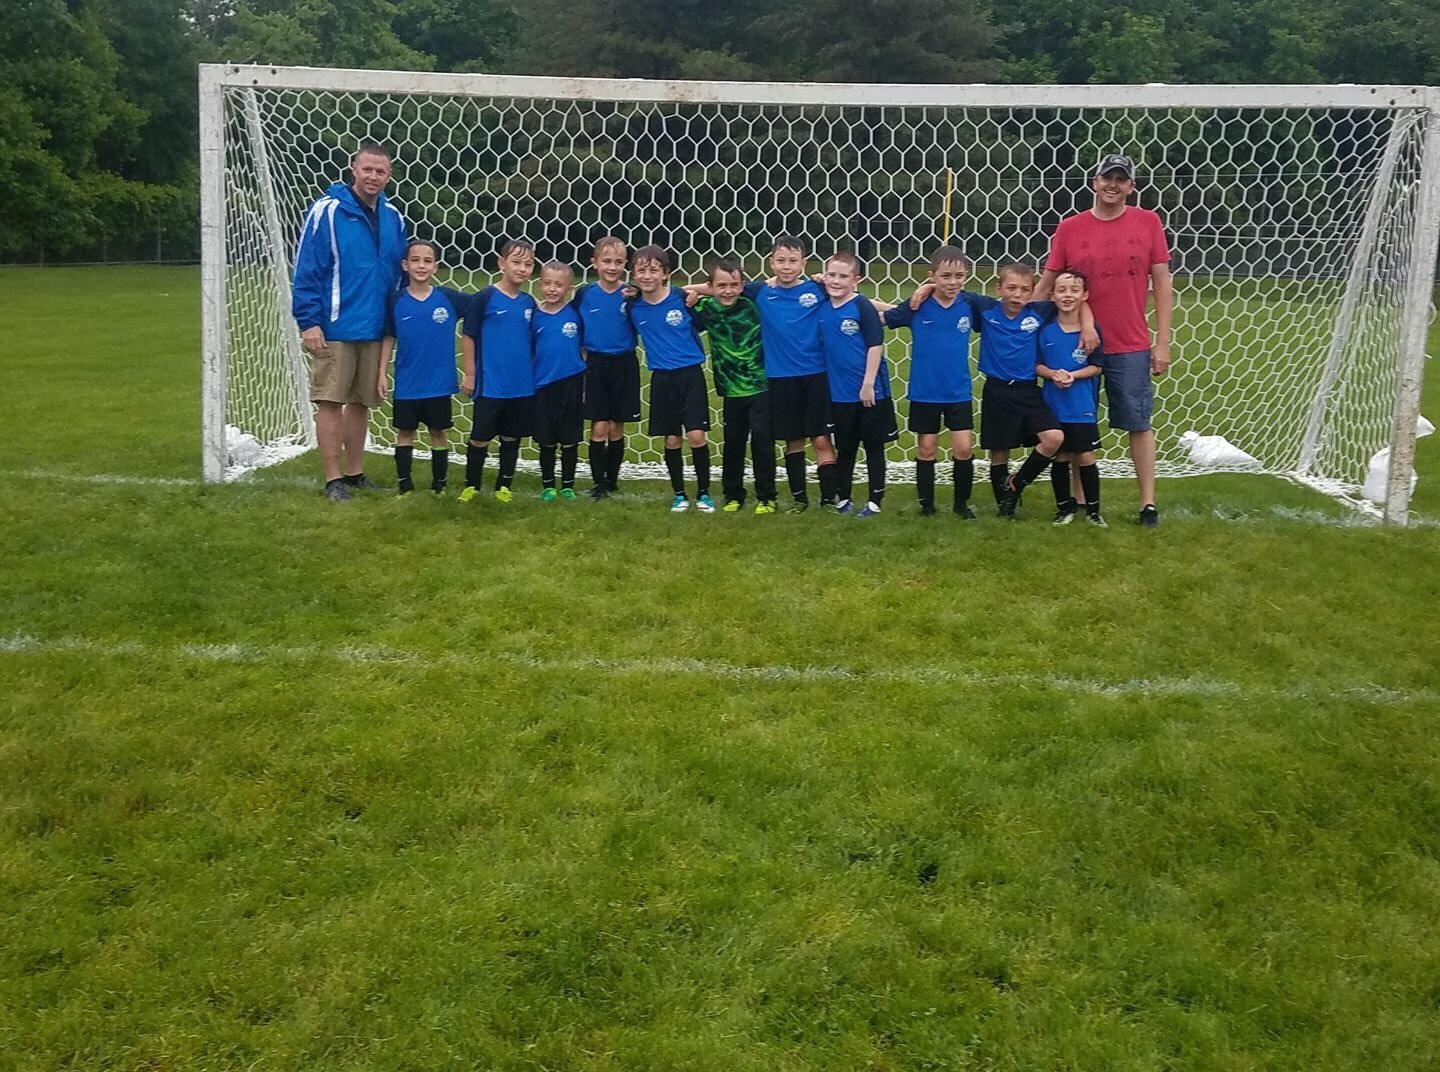 United 2009 Boys win Voorhees Memorial Day Classic Championship!